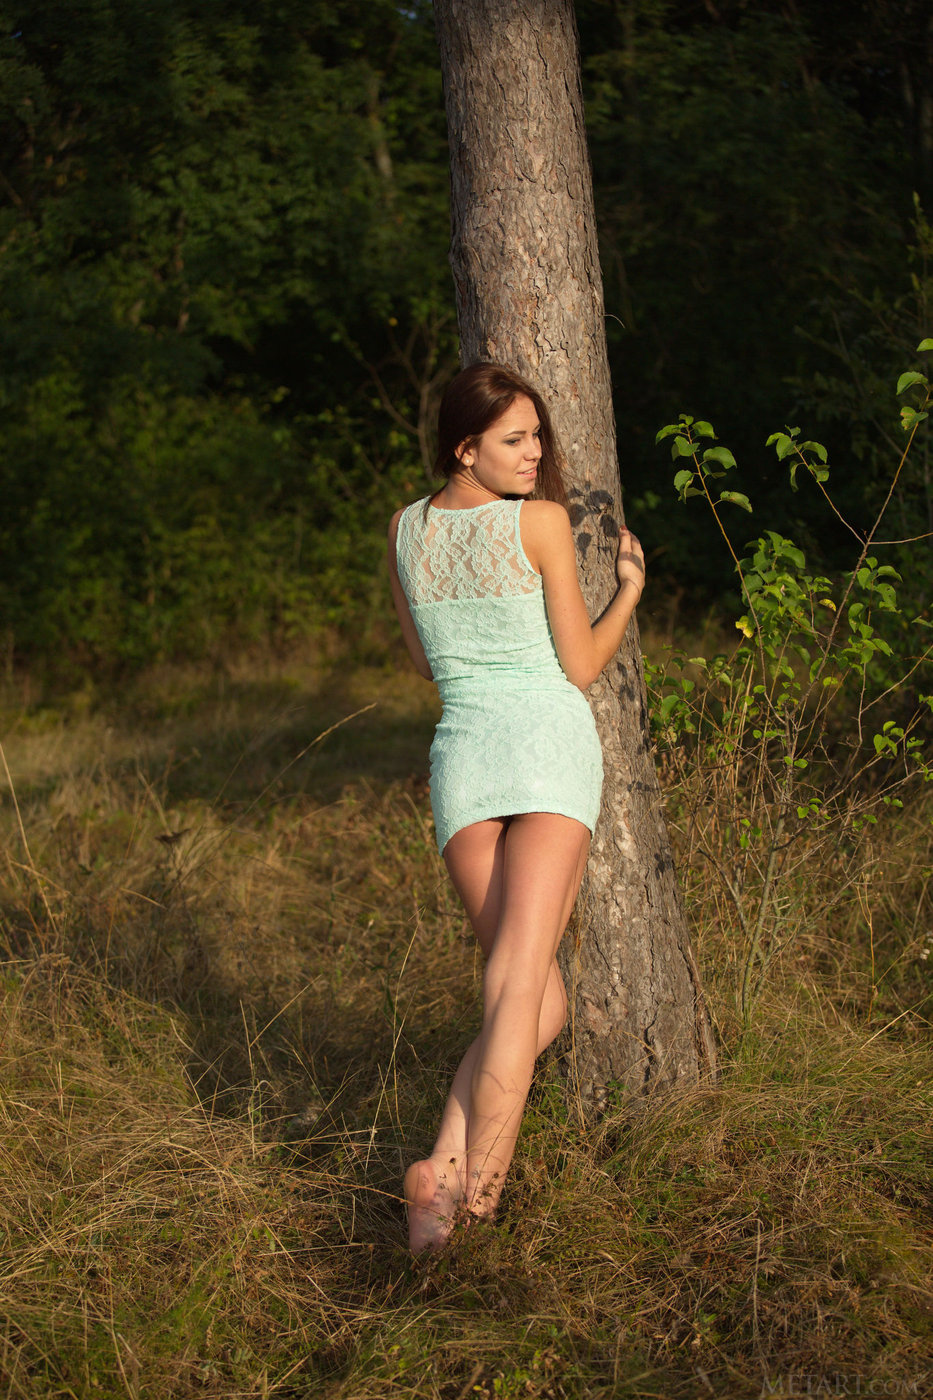 Dress-wearing auburn-haired teen poses naked next to a